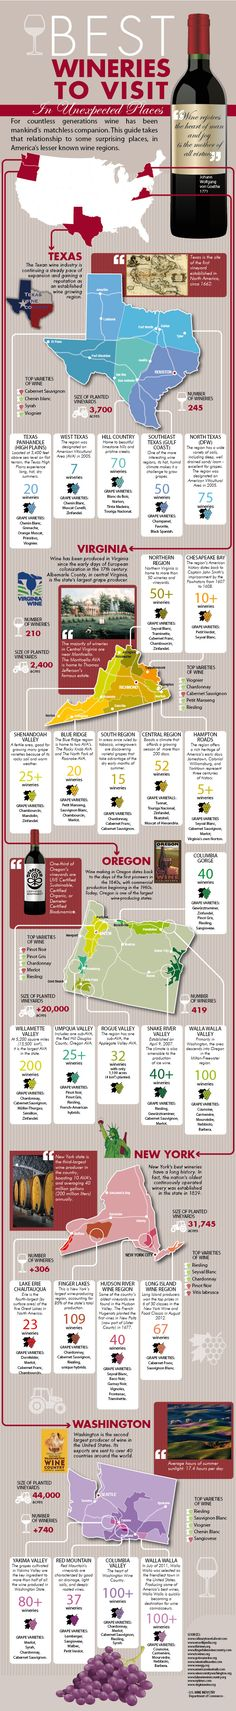 Wineries in the US - Texas, Virginia, Oregon, New York and Washington wine country **wineries for Village Horseshoe Designs